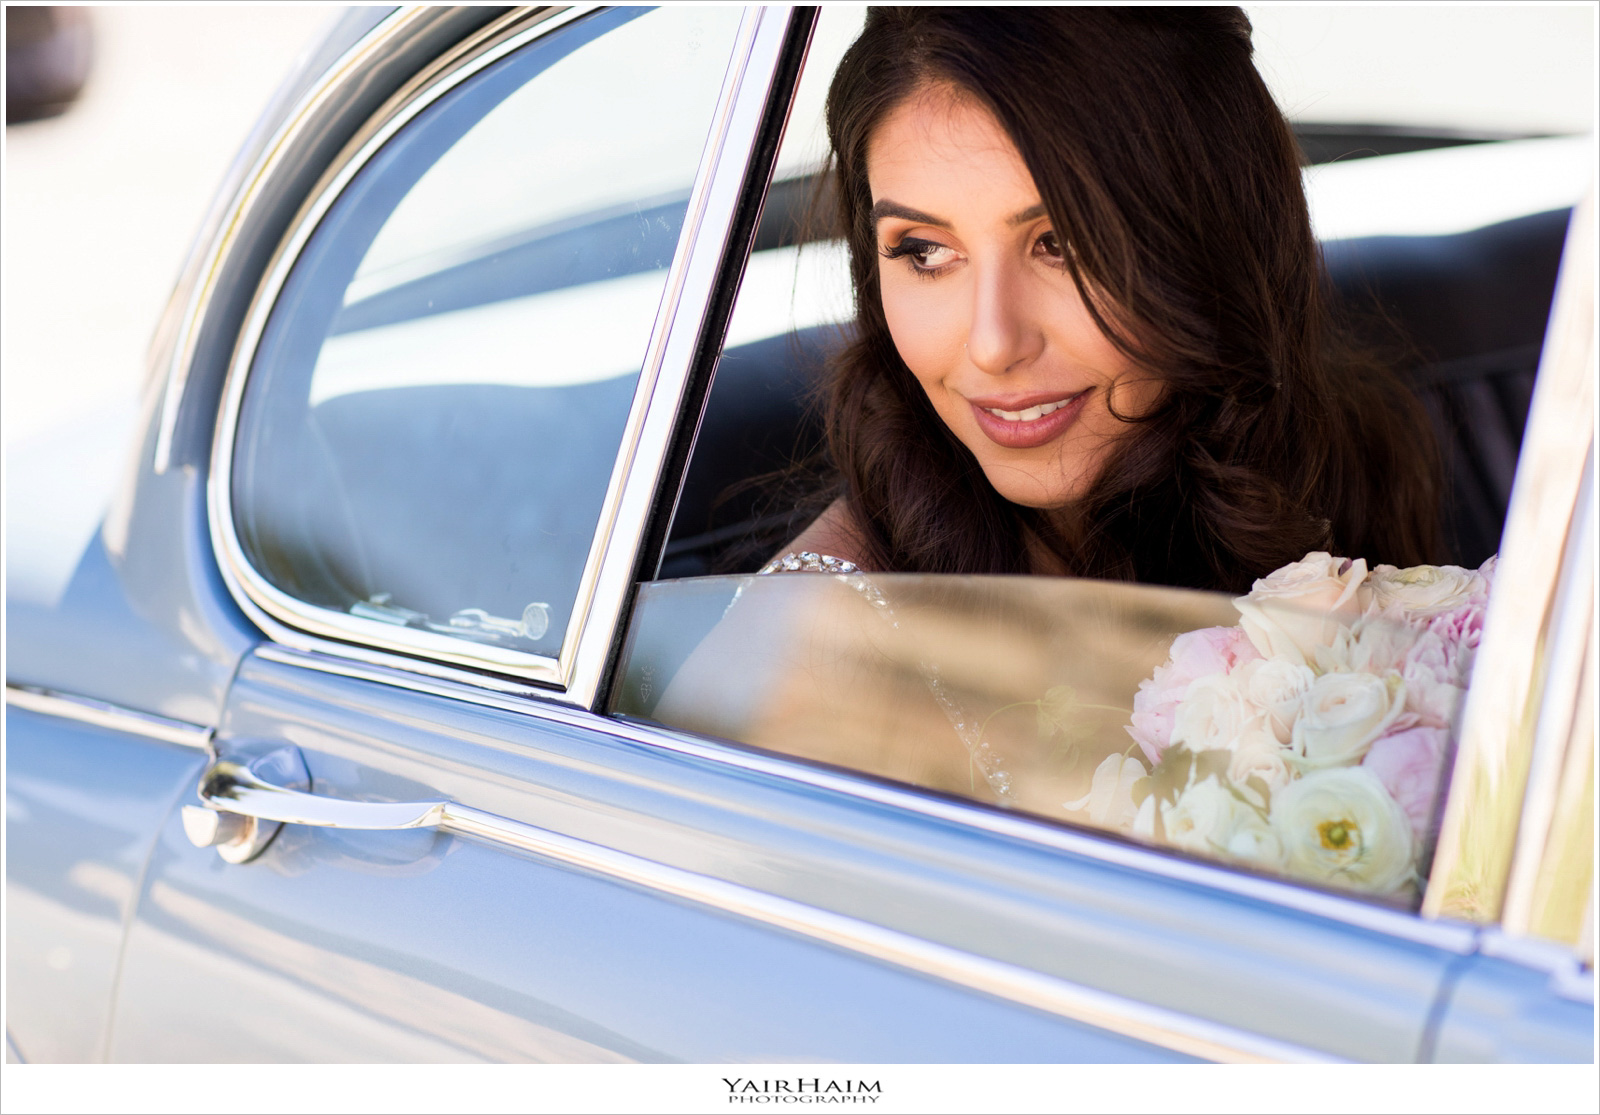 Destination-wedding-photographer-Yair-Haim-12